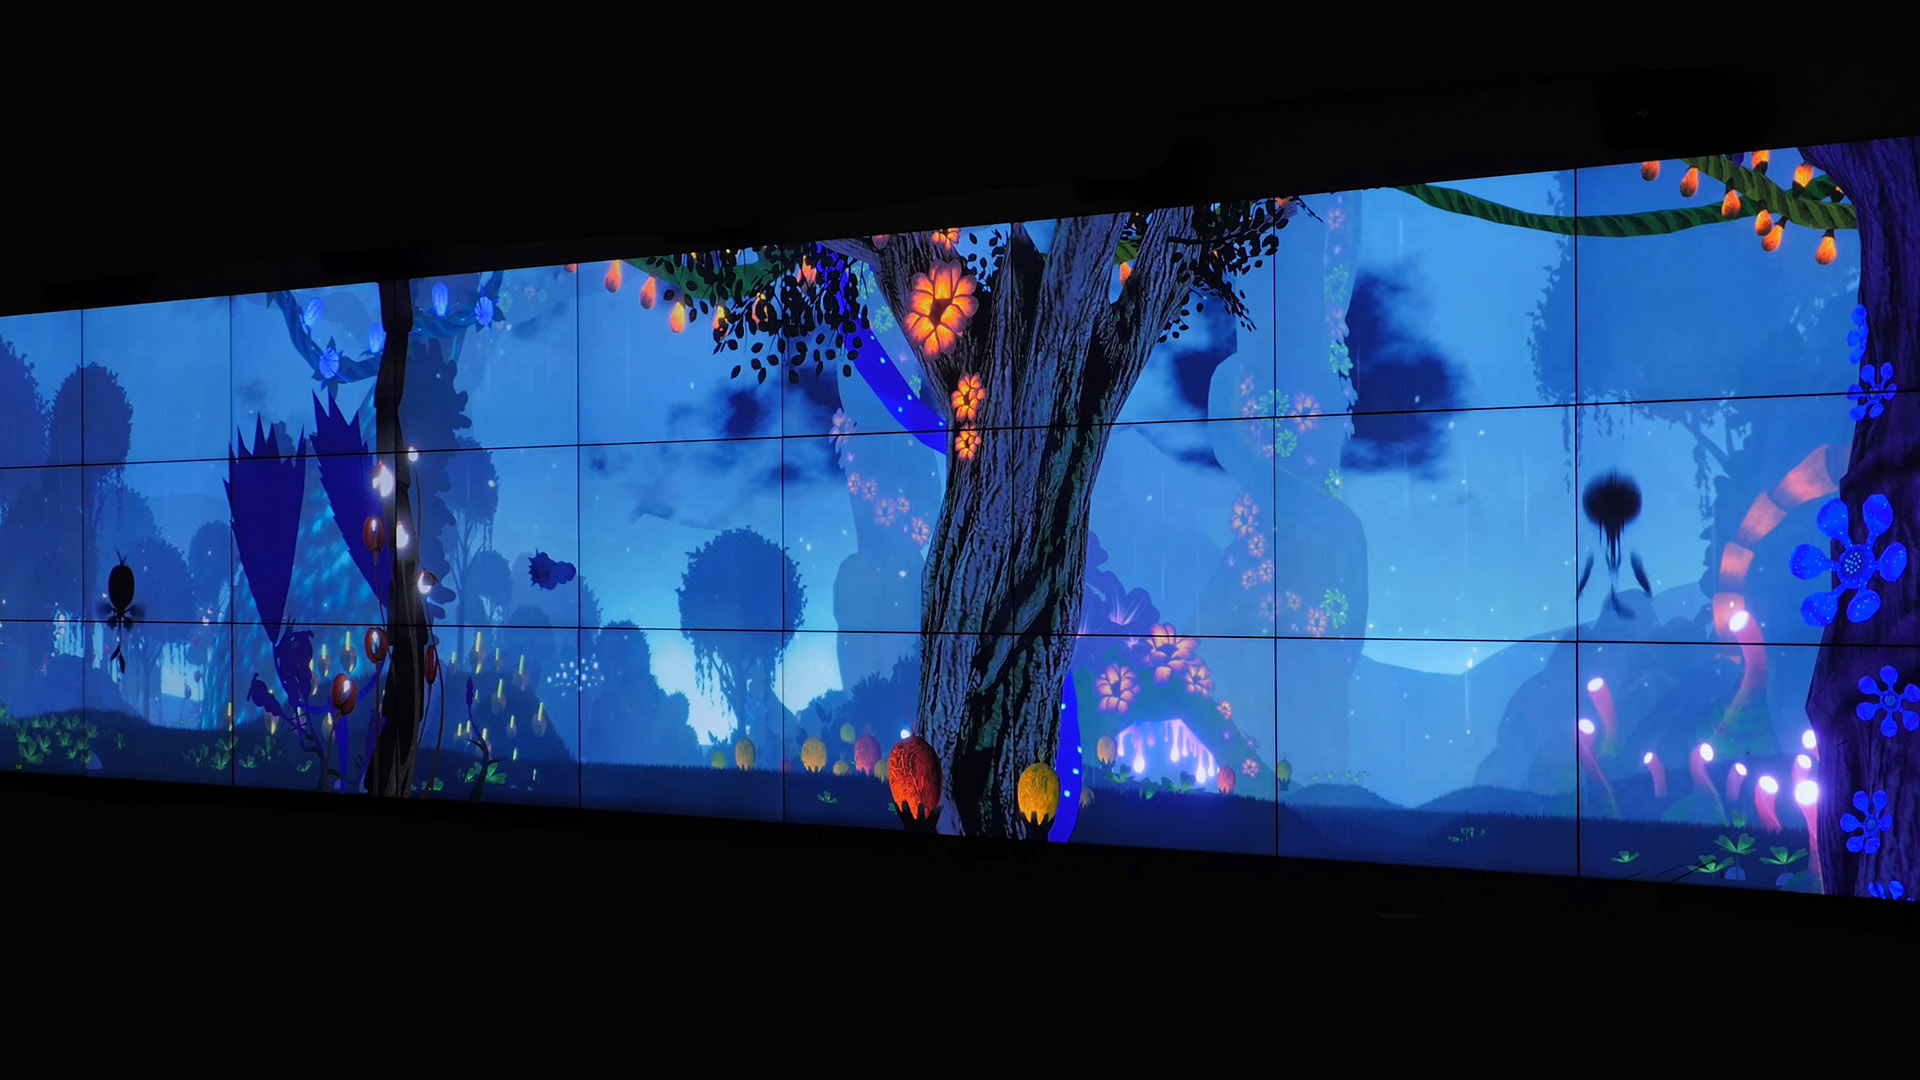 A blue backlit wall screen featuring a mythical forest